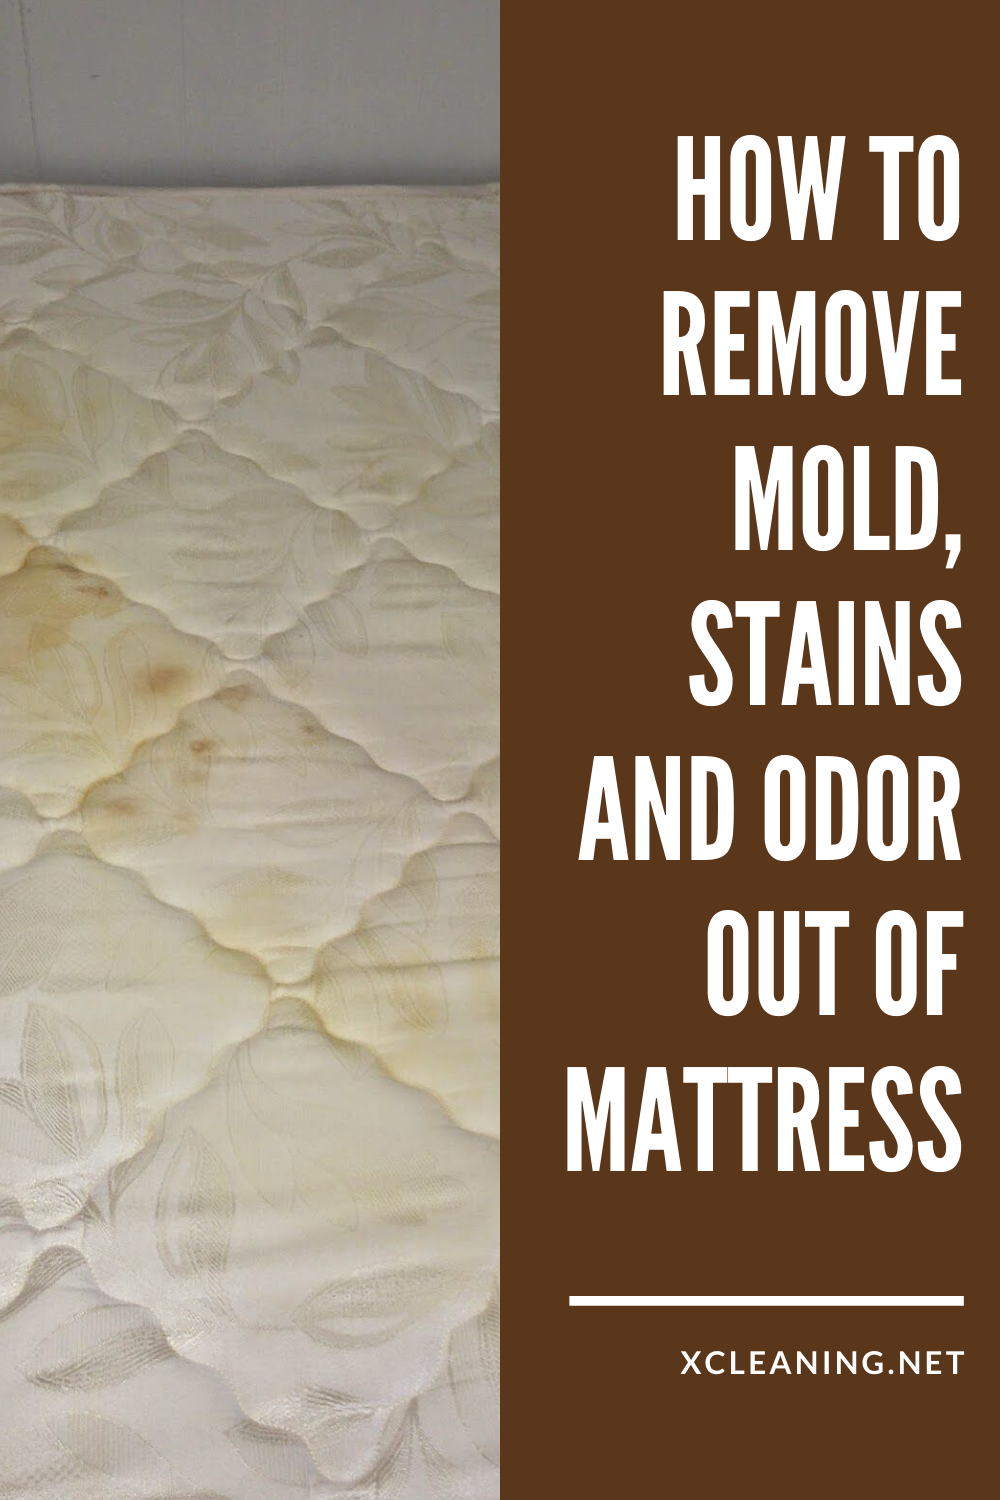 How To Remove Mold, Stains And Odor Out Of Mattress